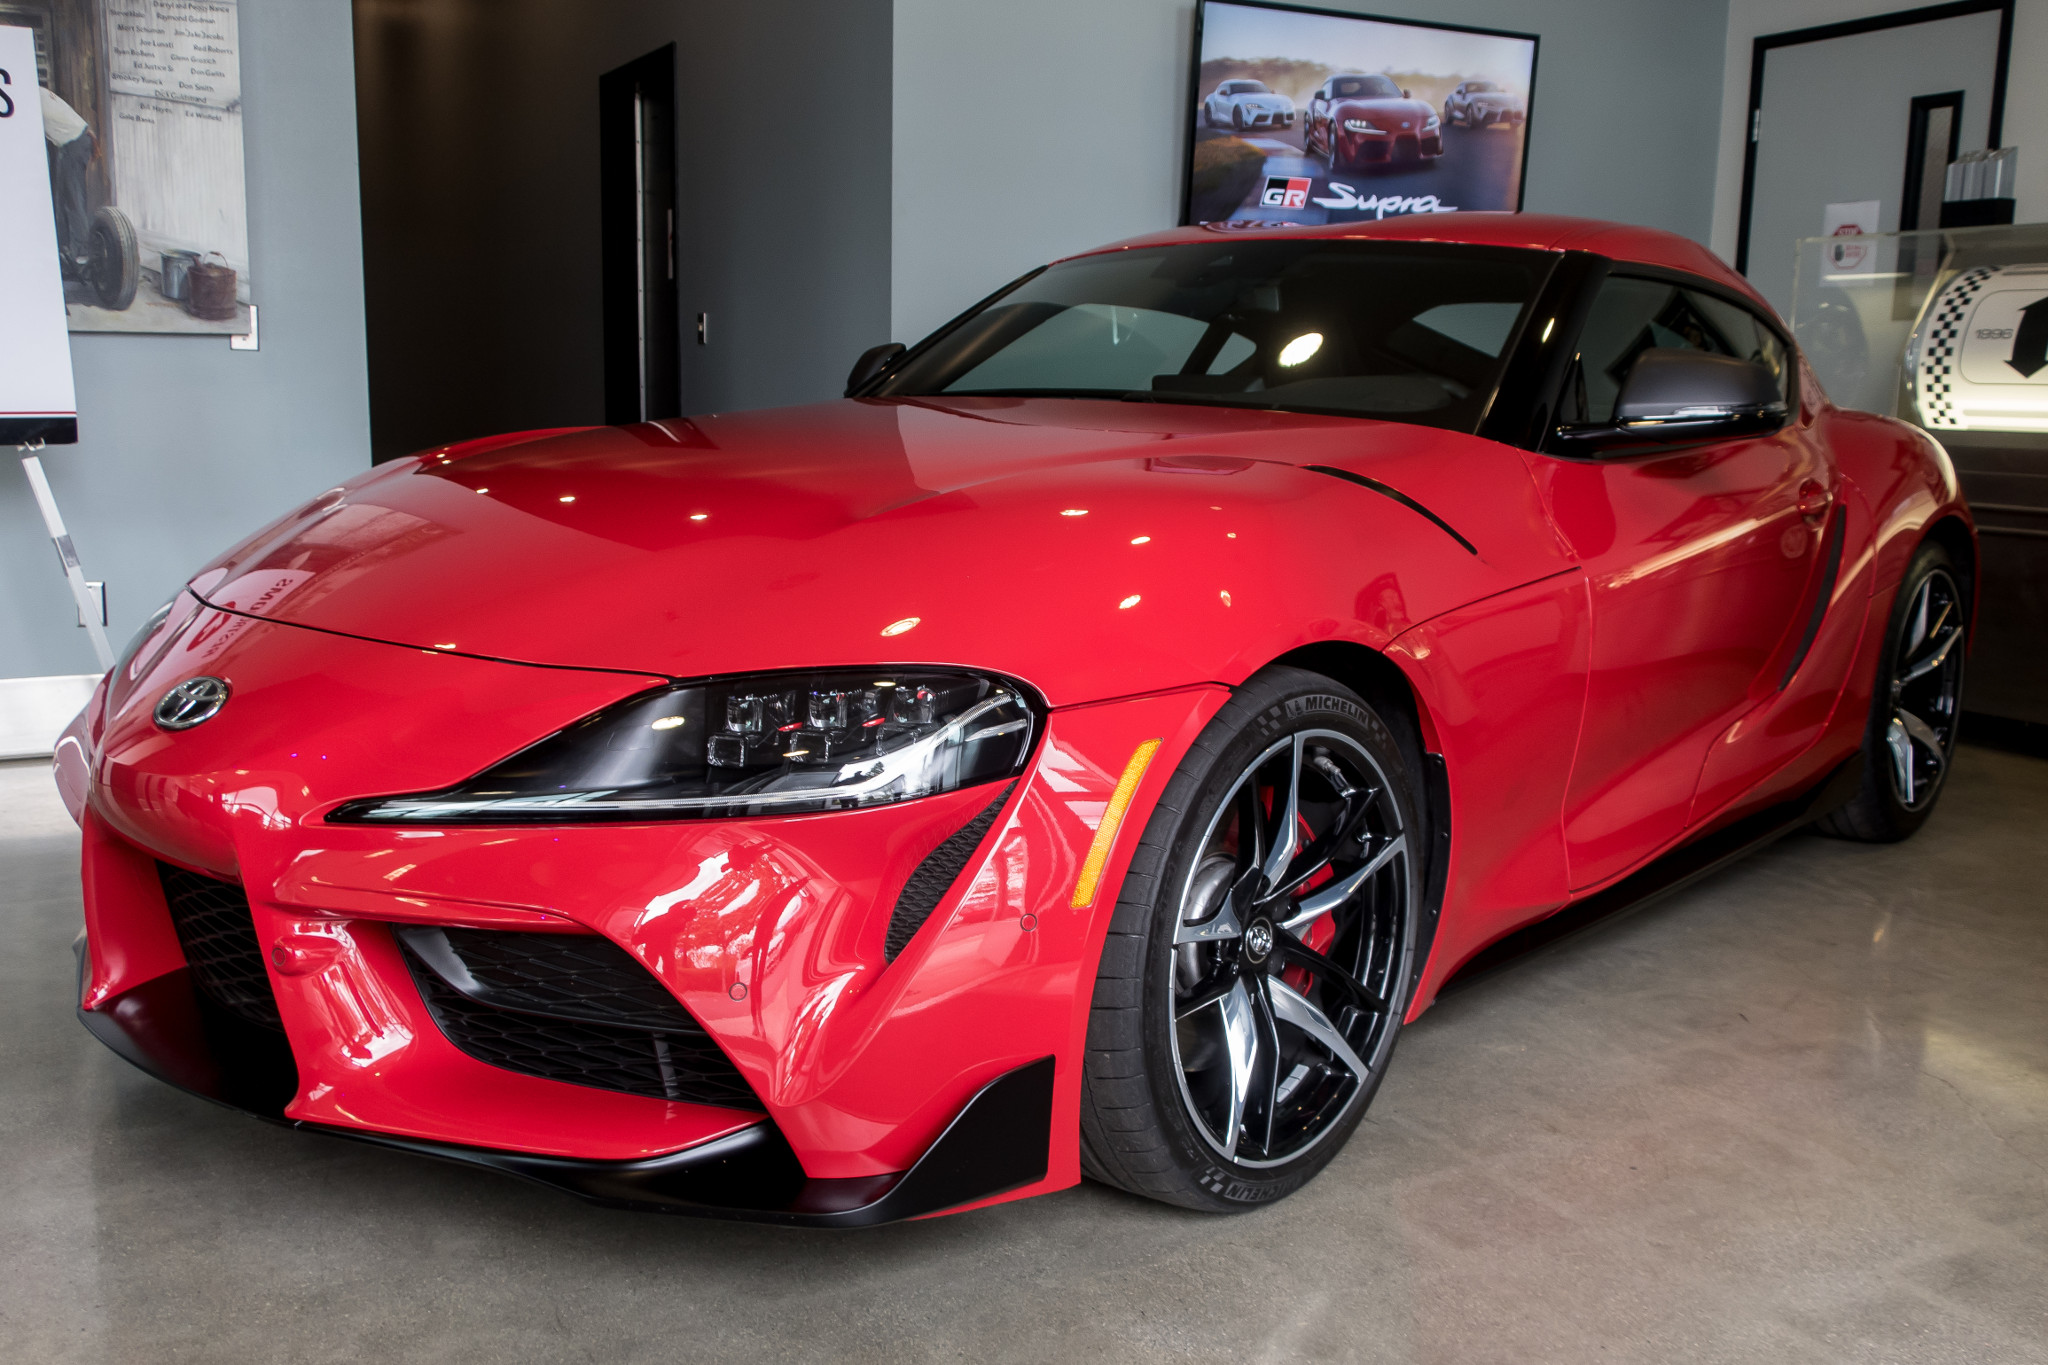 19-toyota-supra-2020-angle--exterior--front--red.jpg